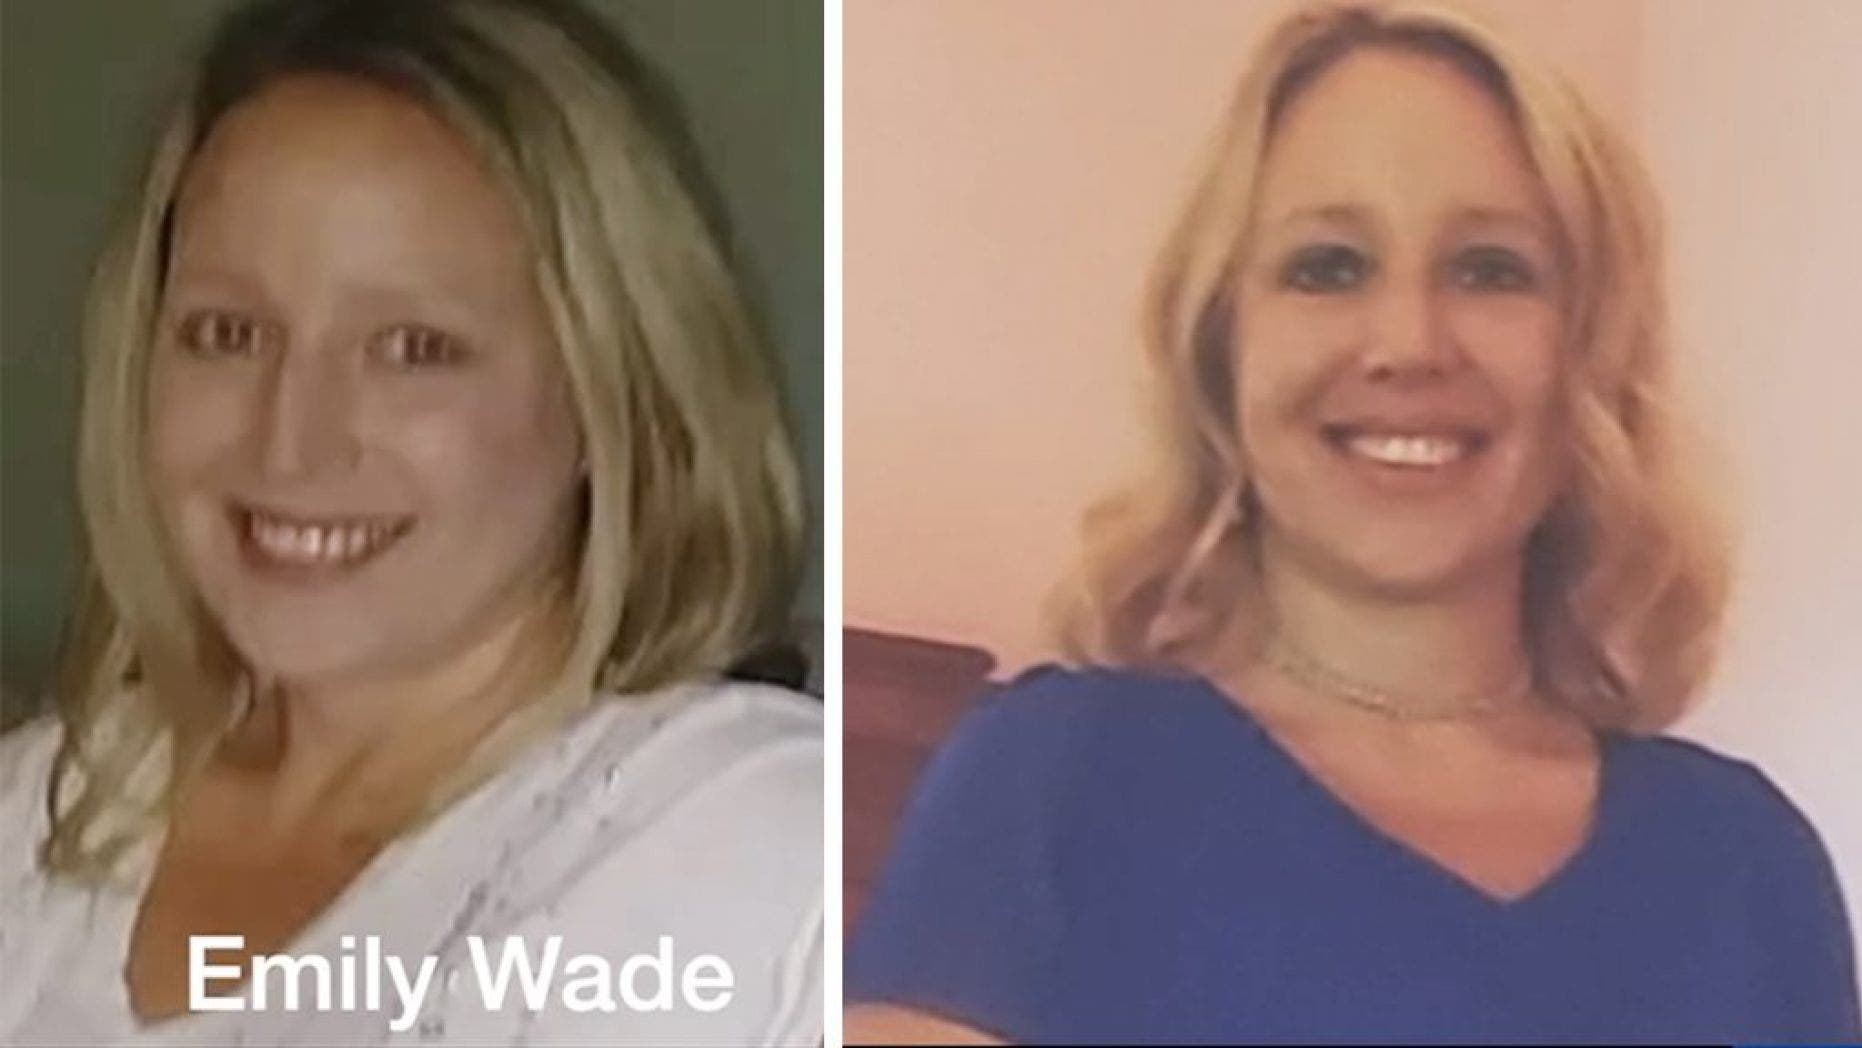 A body that matched the description of Emily Wade, a 38-year-old mother who was reported missing earlier this month, was found in a creek on Monday morning, police said.